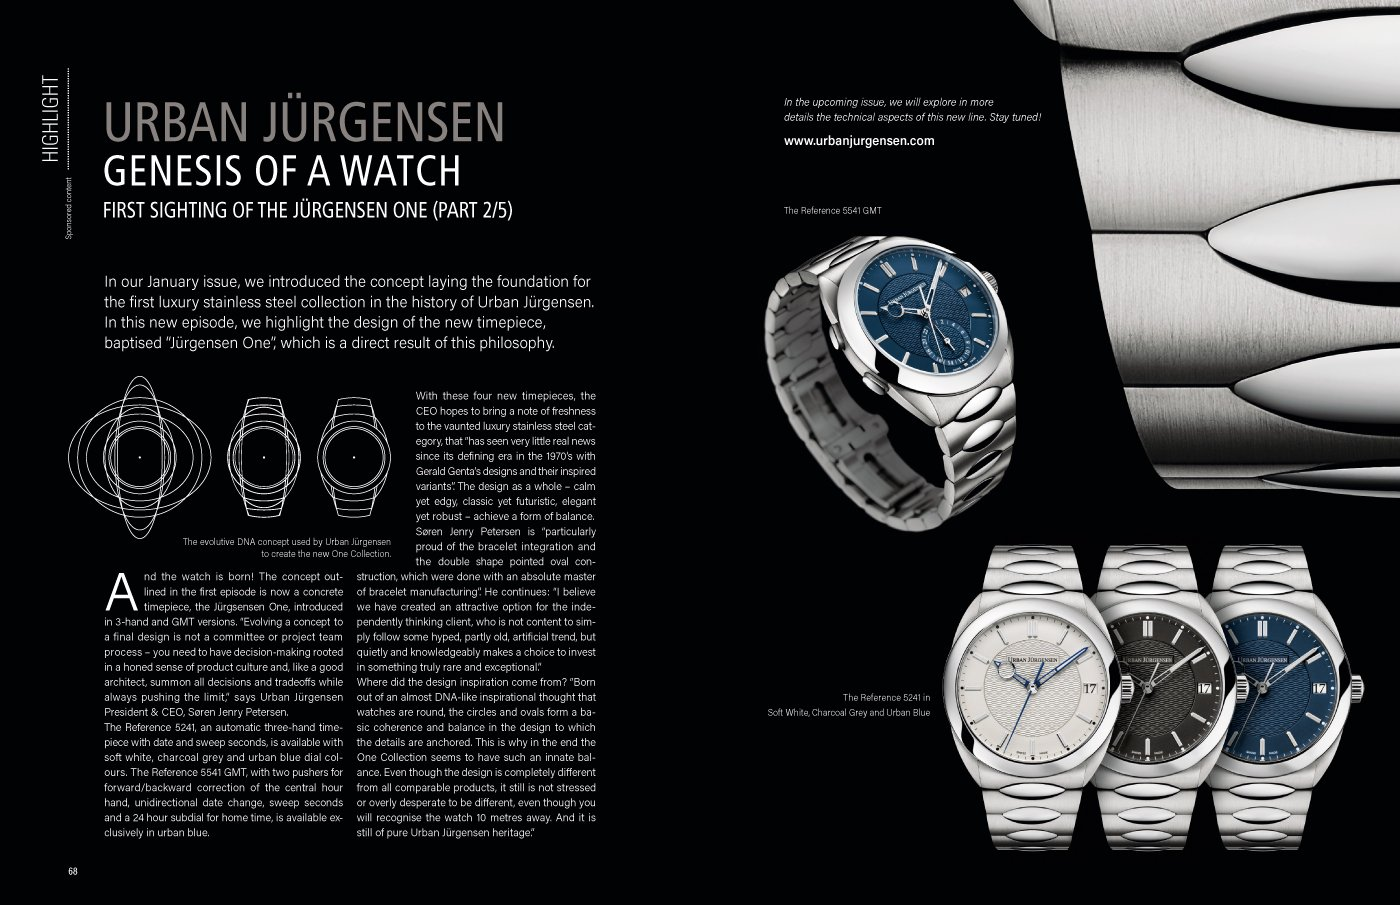 Urban Jürgensen: genesis of a watch